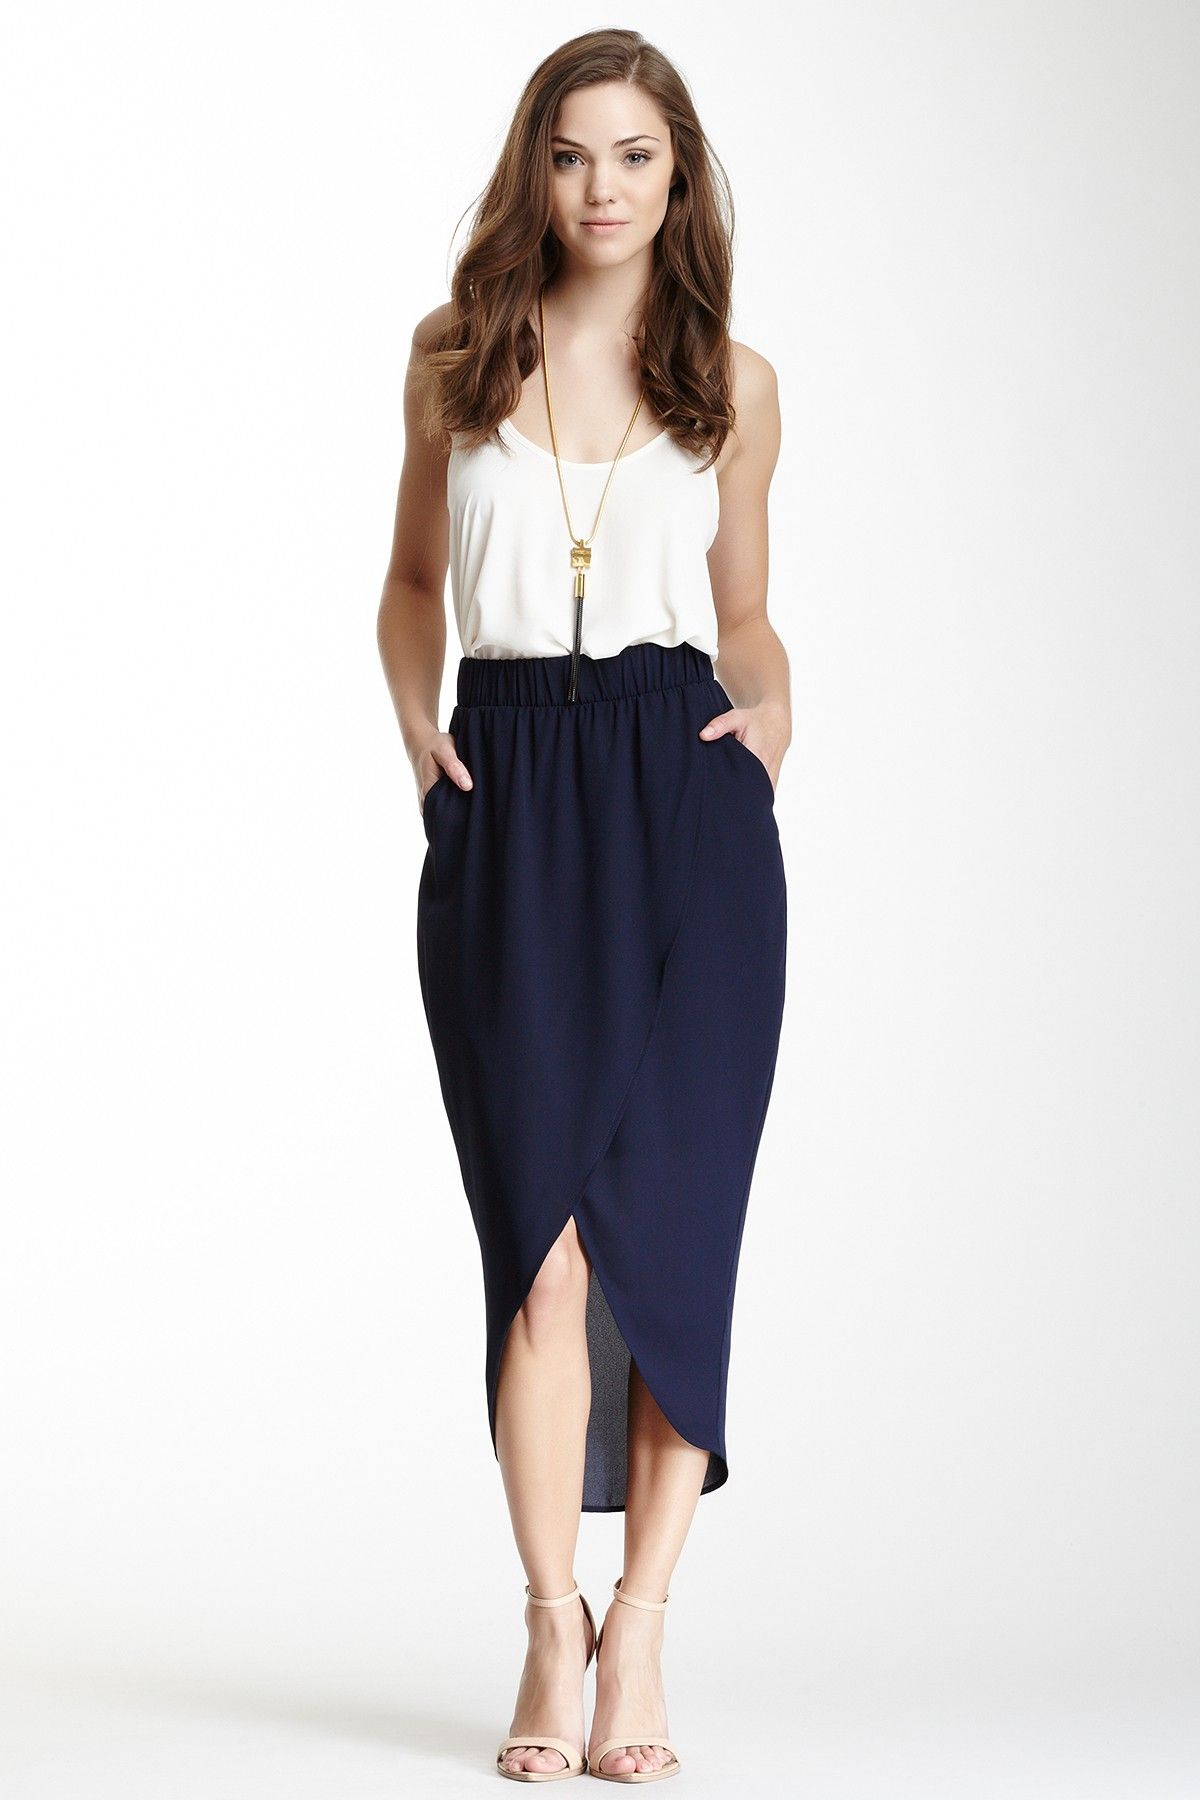 High waist long skirt with white top and long necklace is a ...